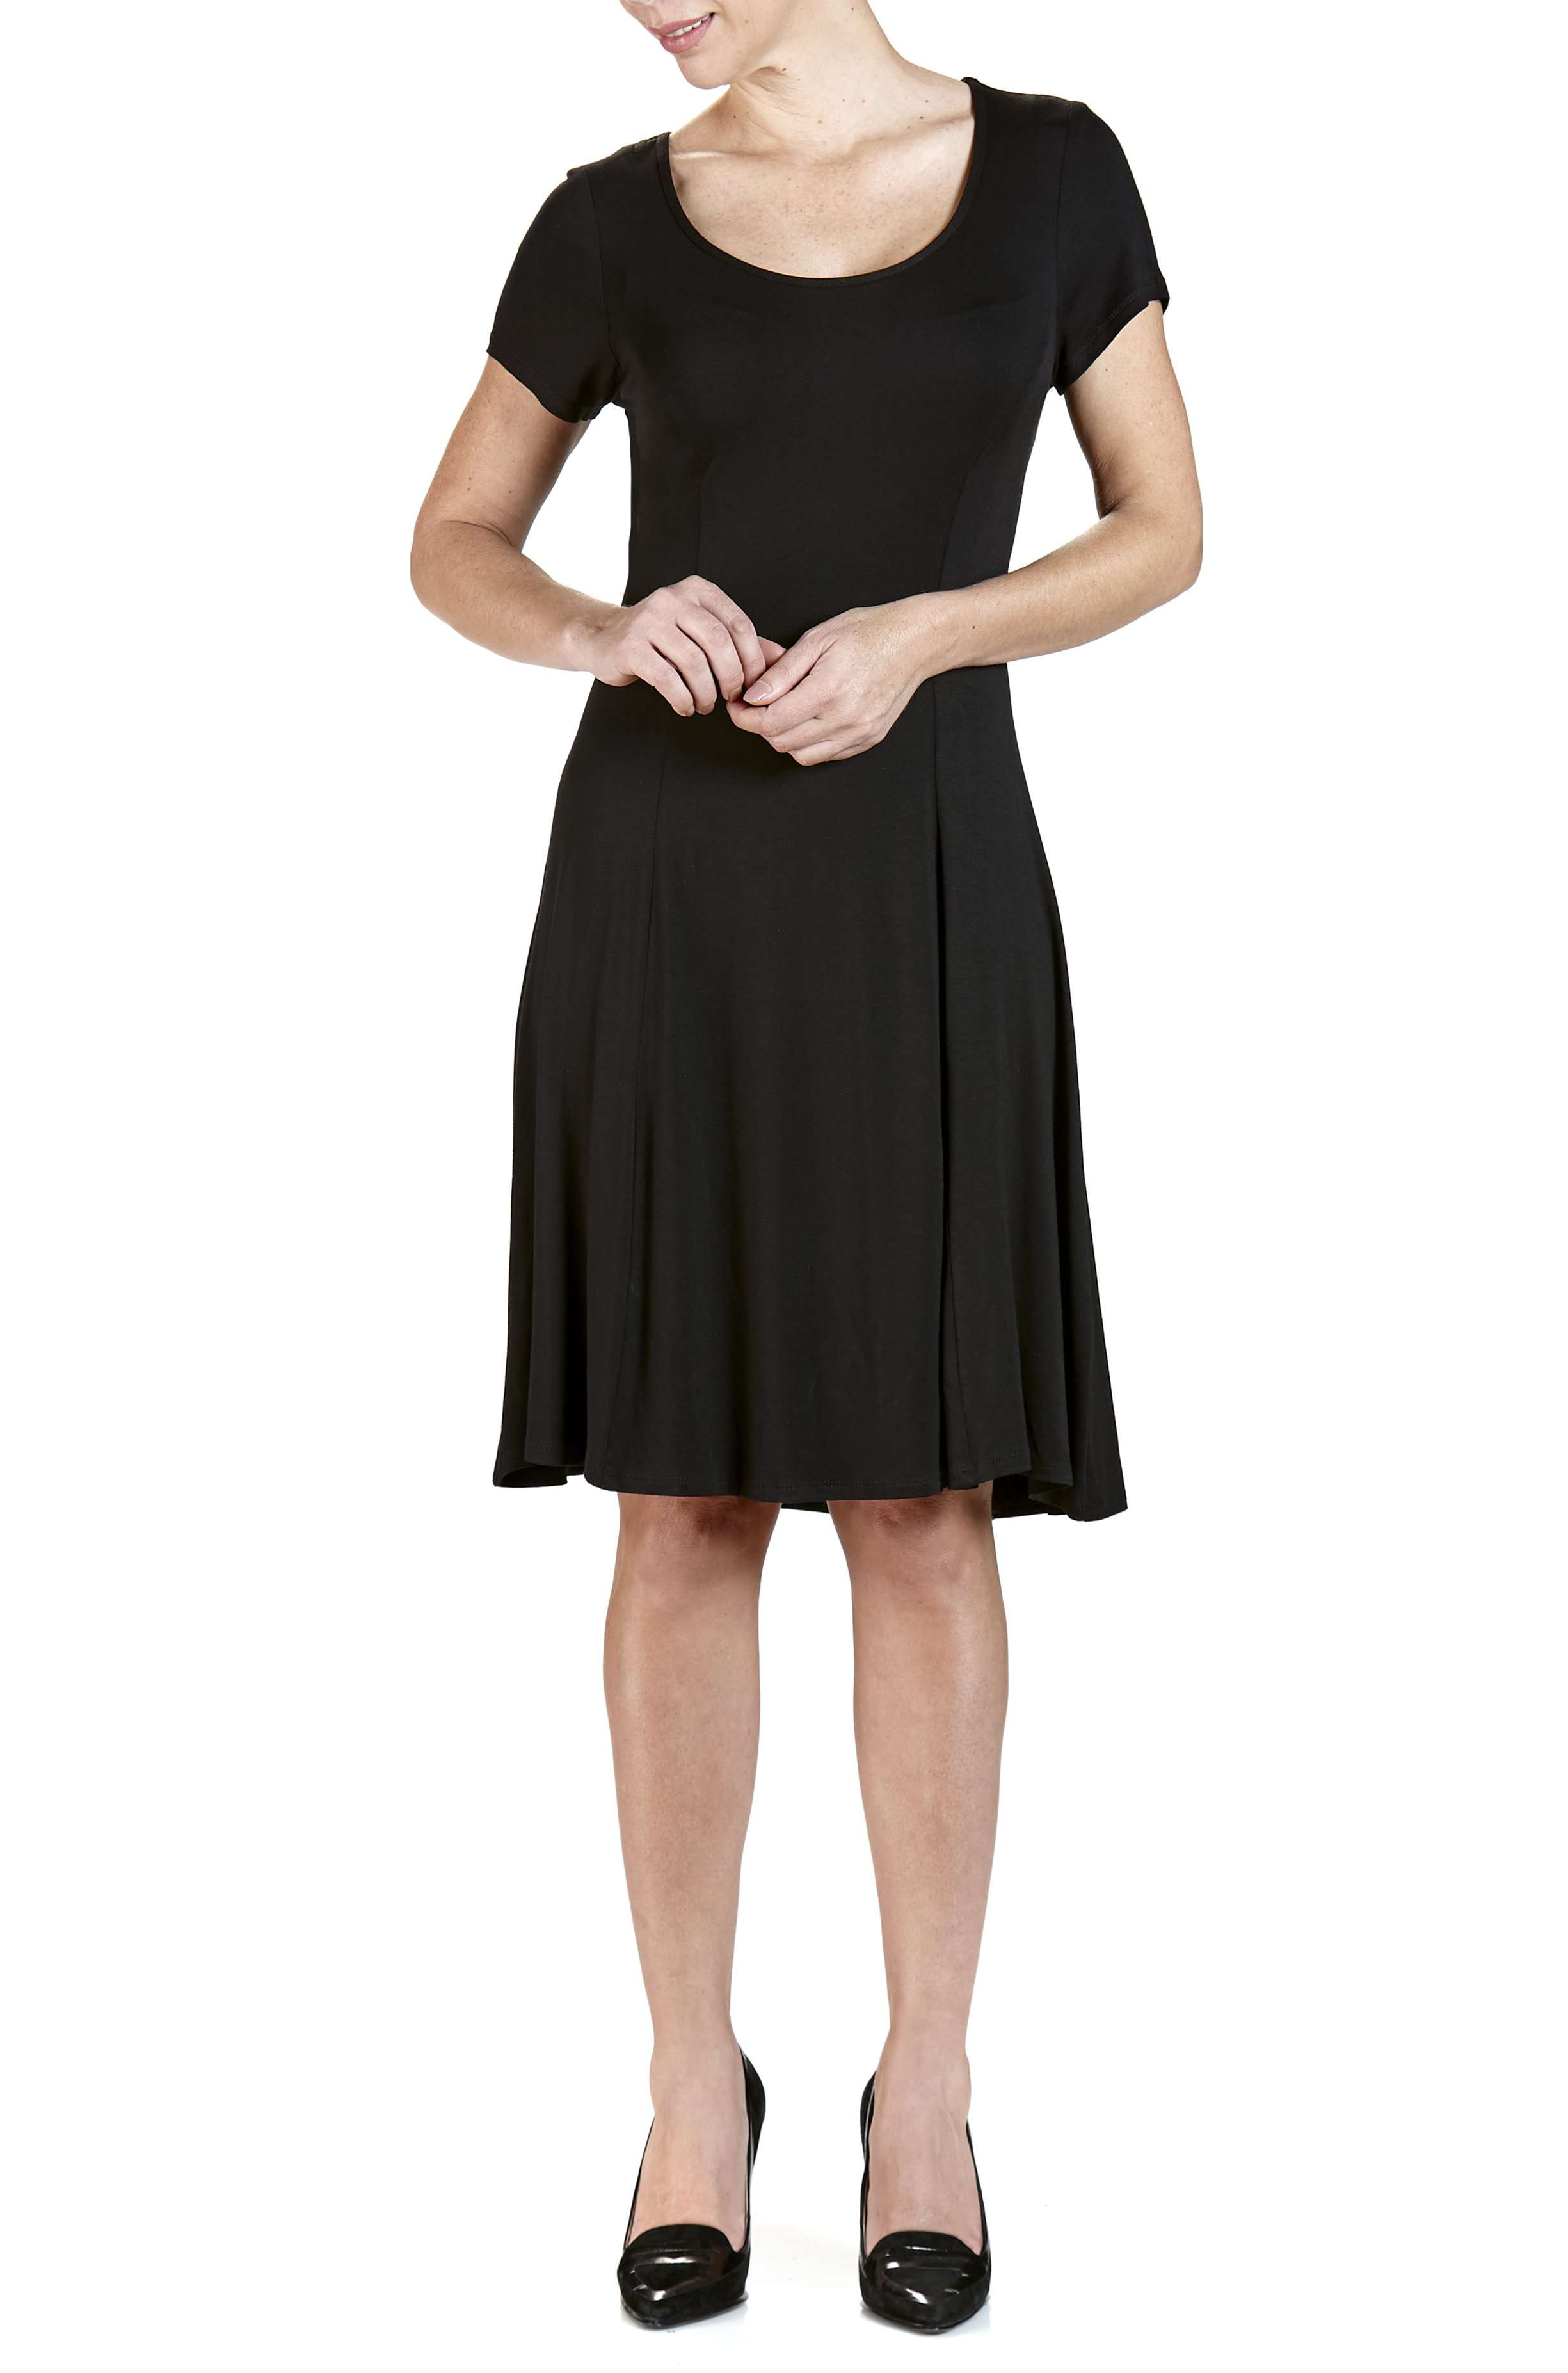 Black Dress Classic Fit and Flare - Yvonne Marie